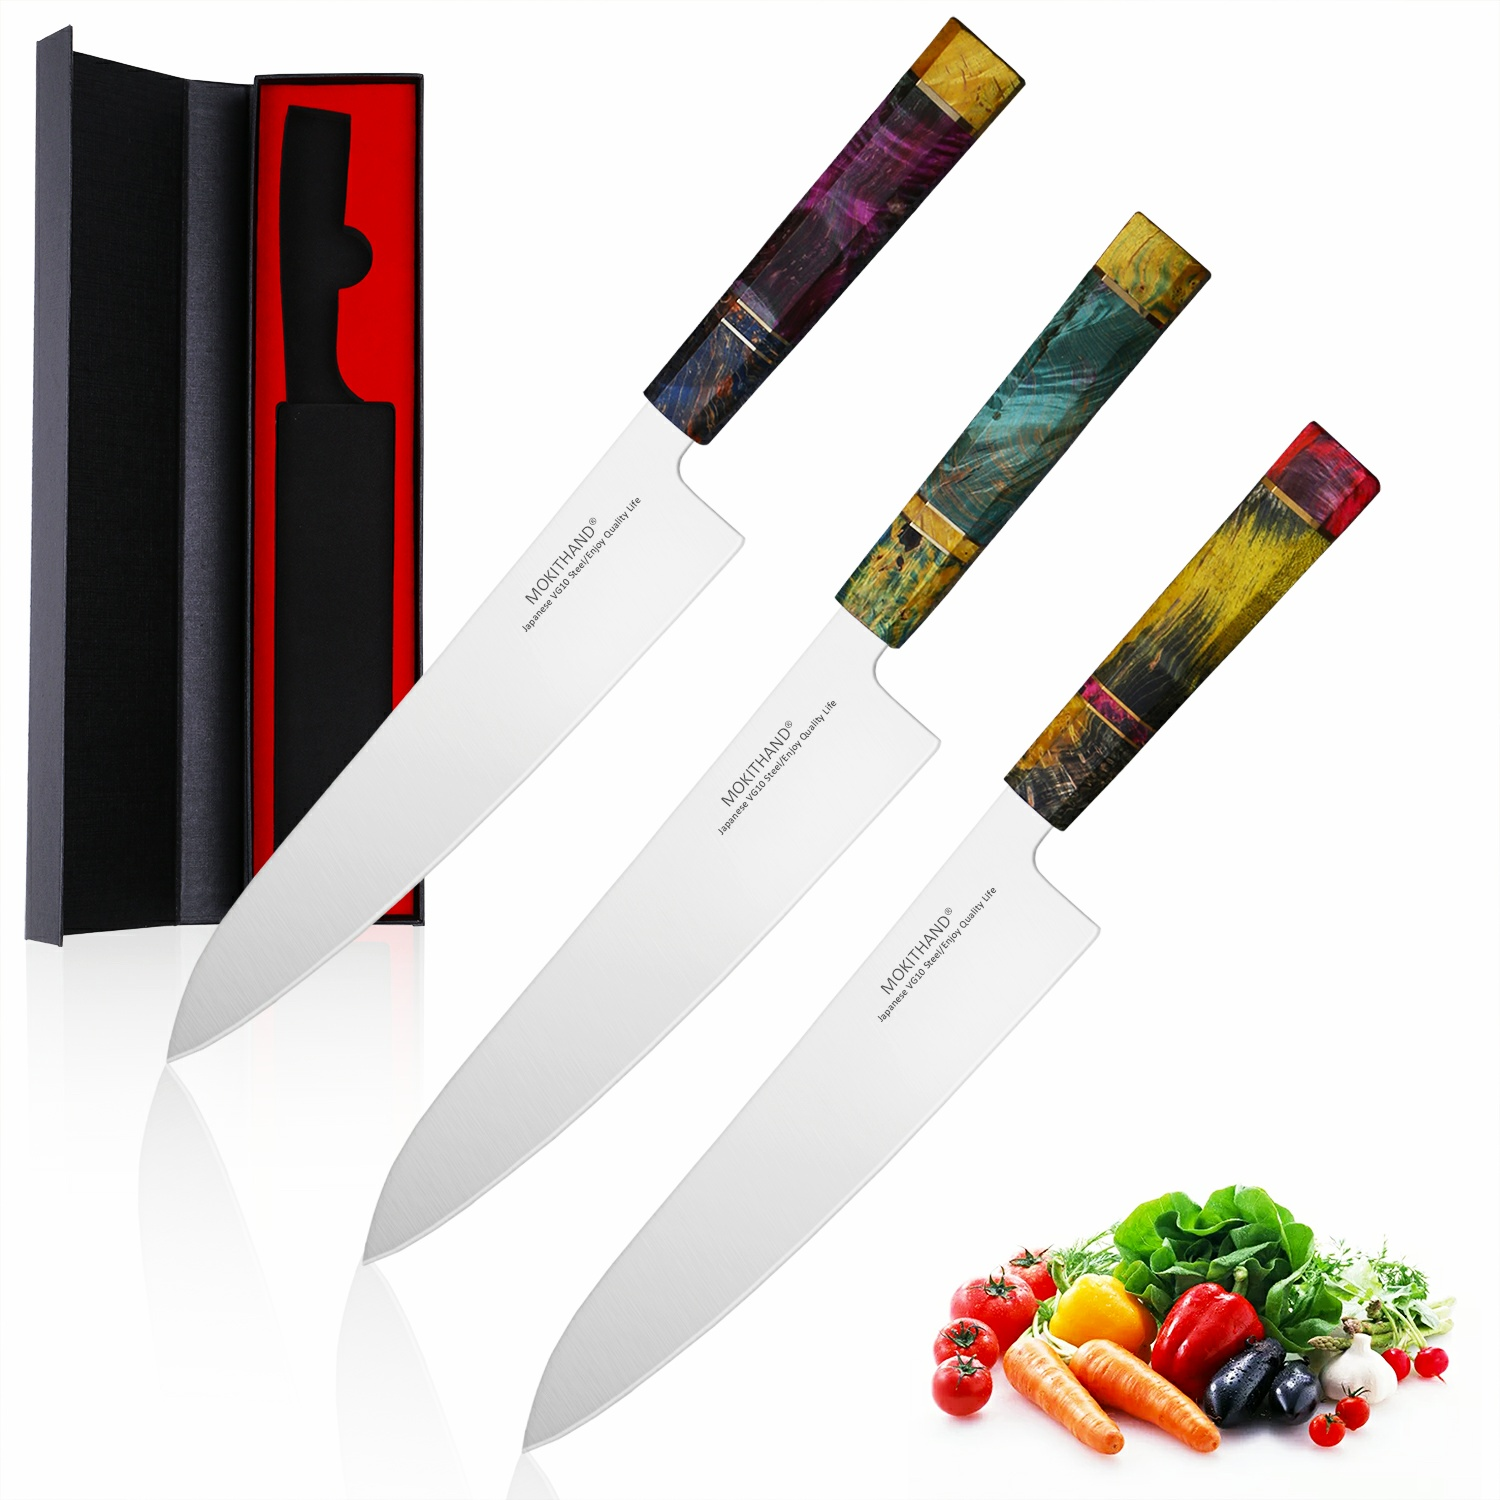 Mokithand 9 Inch Chef Knife Japanese VG10 Kitchen Knives 240mm Professional Japan Damascus Steel Fish Meat